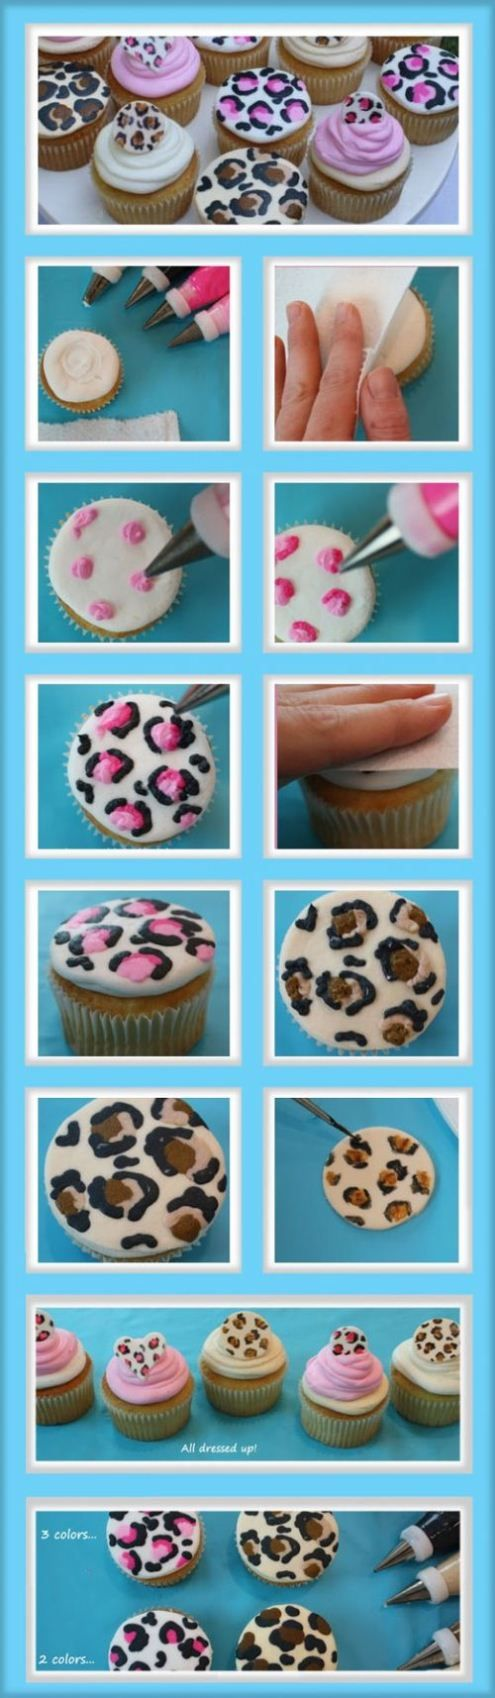 Leopard Print Cupcakes~Free Blog Tutorial!                                                                                                                                                                                 More